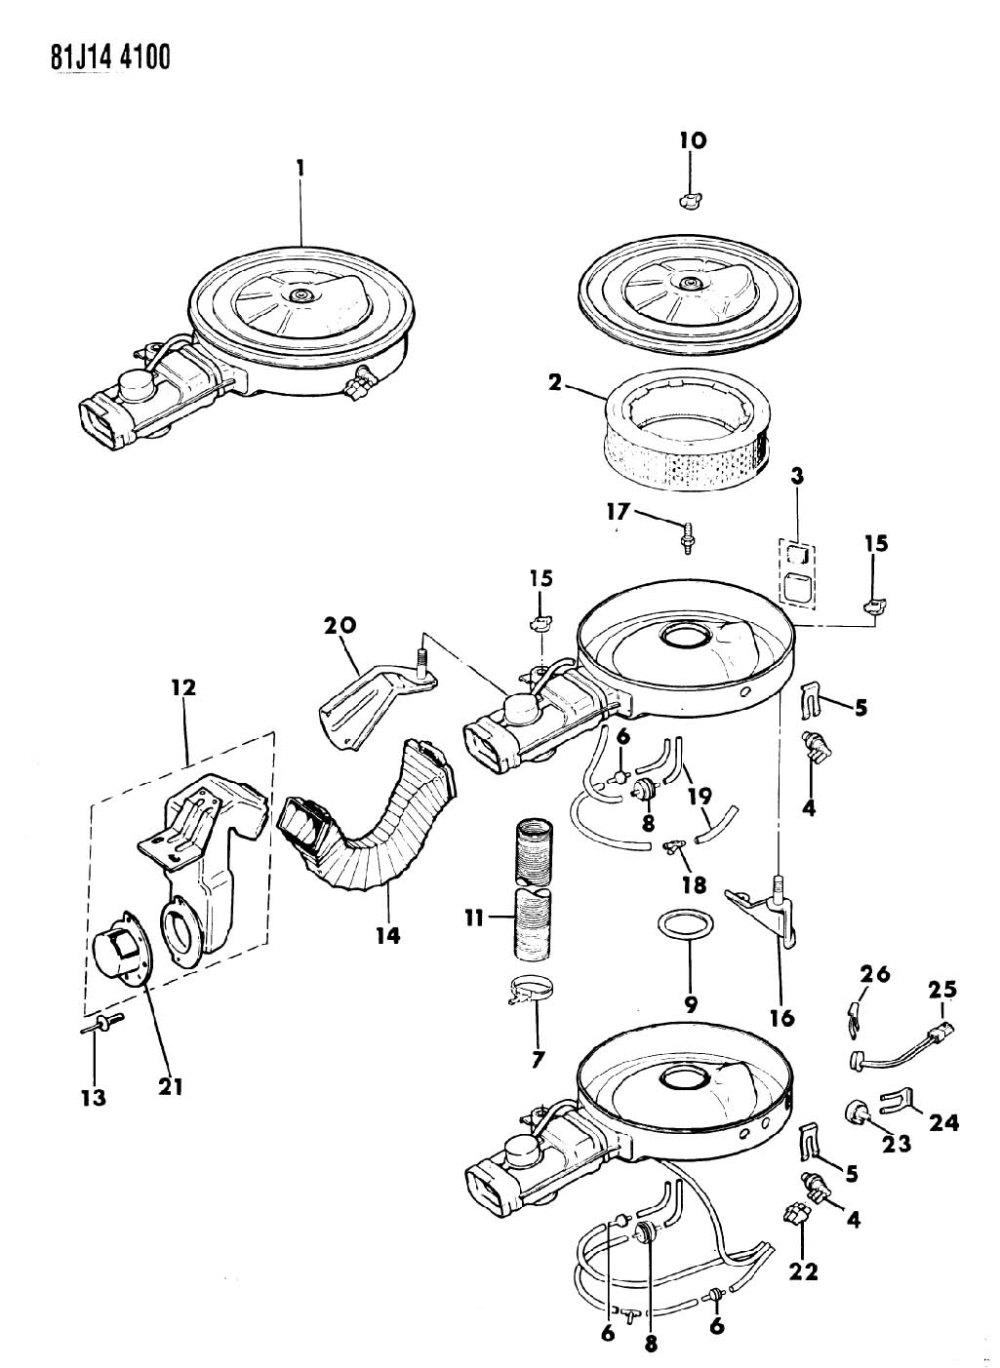 medium resolution of 86 jeep comanche fuel filter 86 get free image about wiring diagram 87 jeep yj vacuum diagram 87 jeep wrangler vacuum line diagram